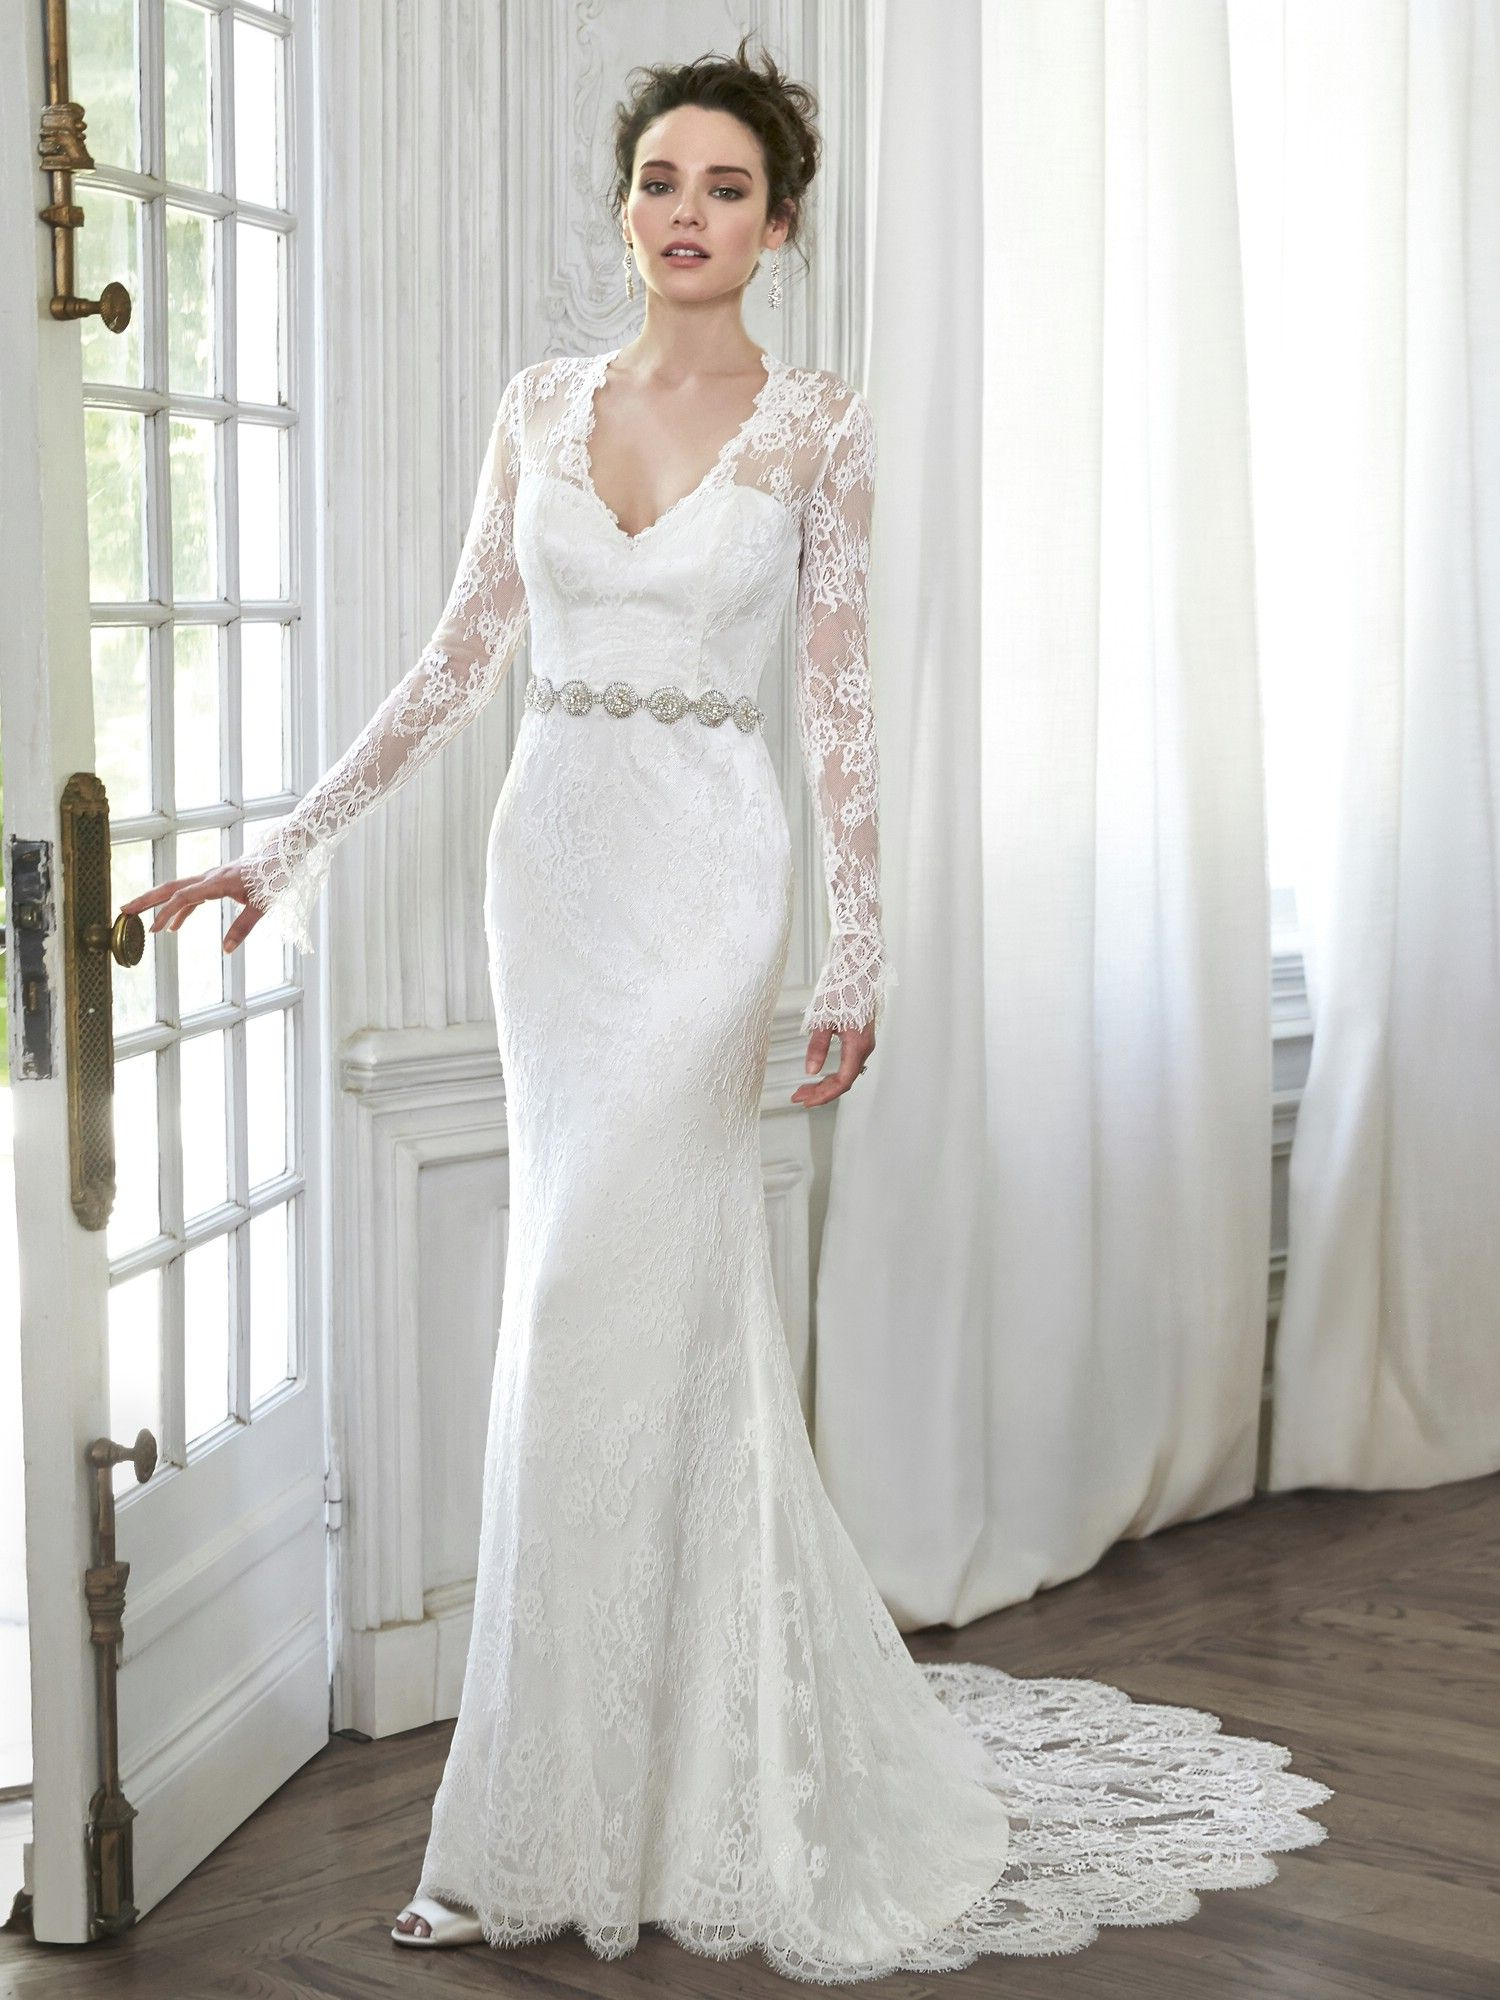 Maggie Sottero Wedding Dresses - Style Darla | Wedding dress ...